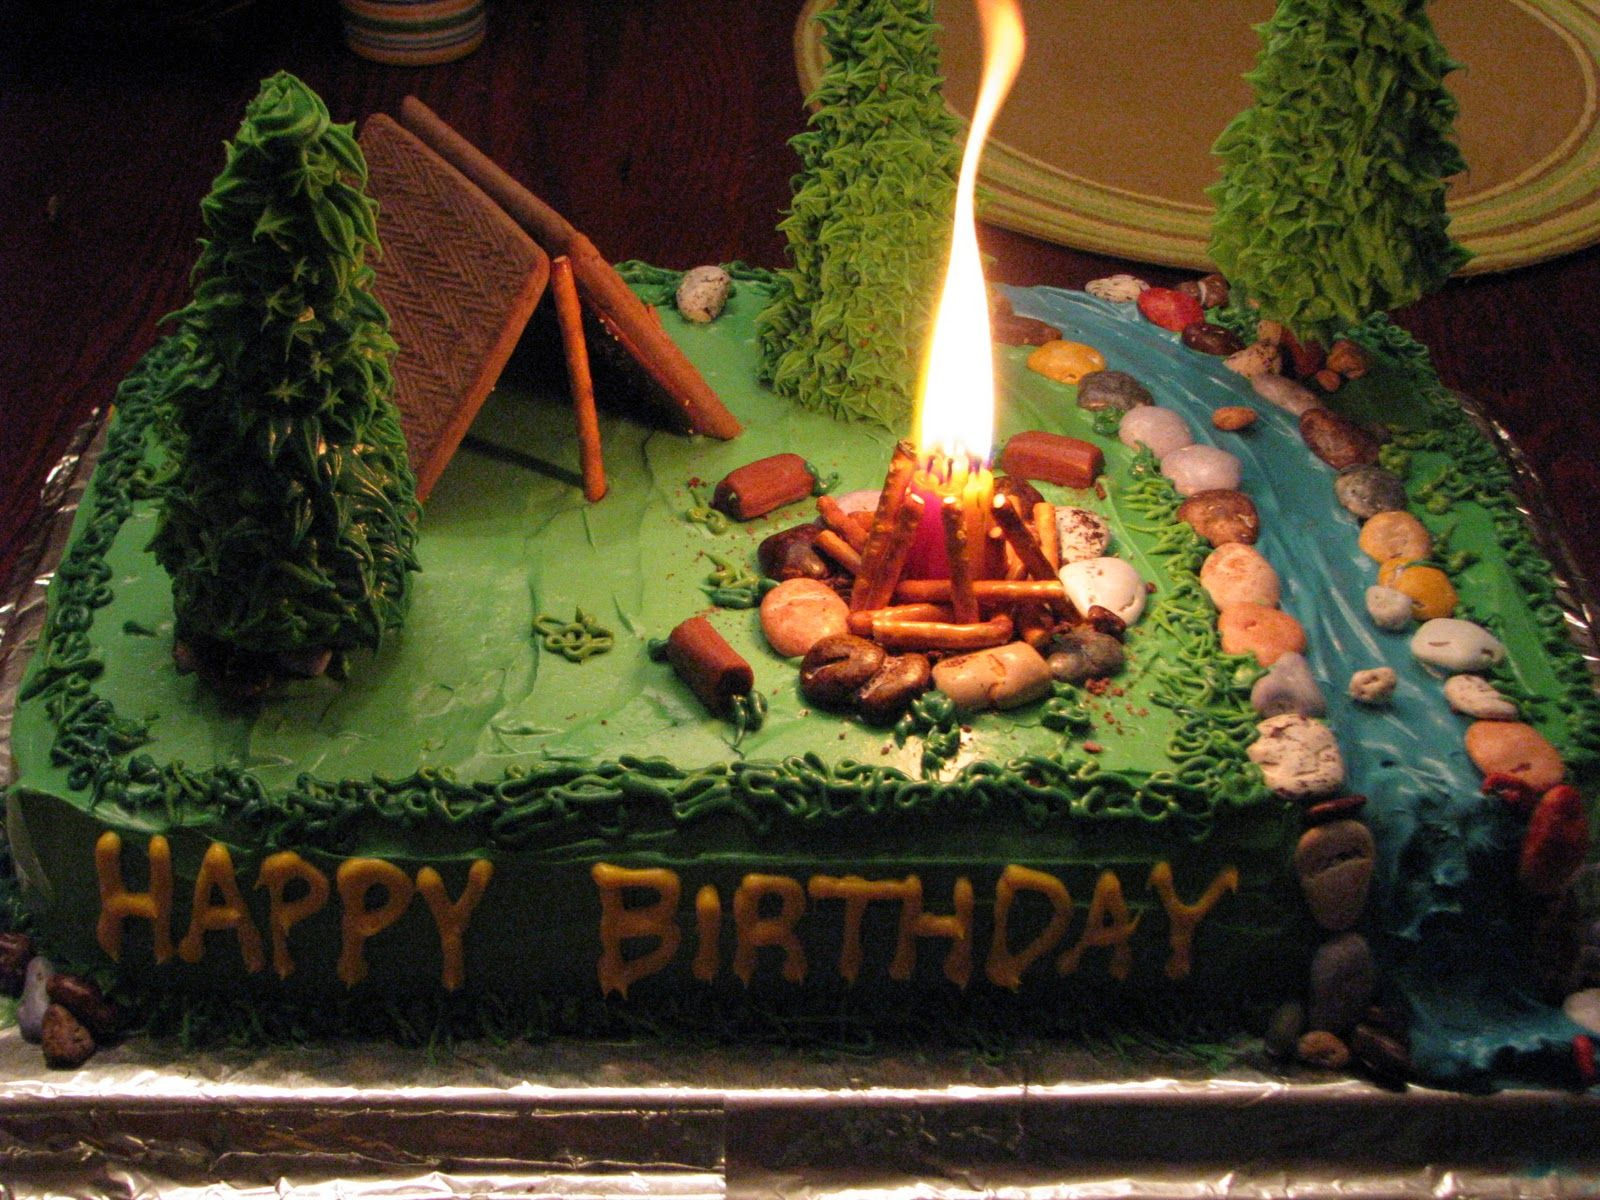 A Simple Birthday Cake Recipe For Homemade Cakes With Images